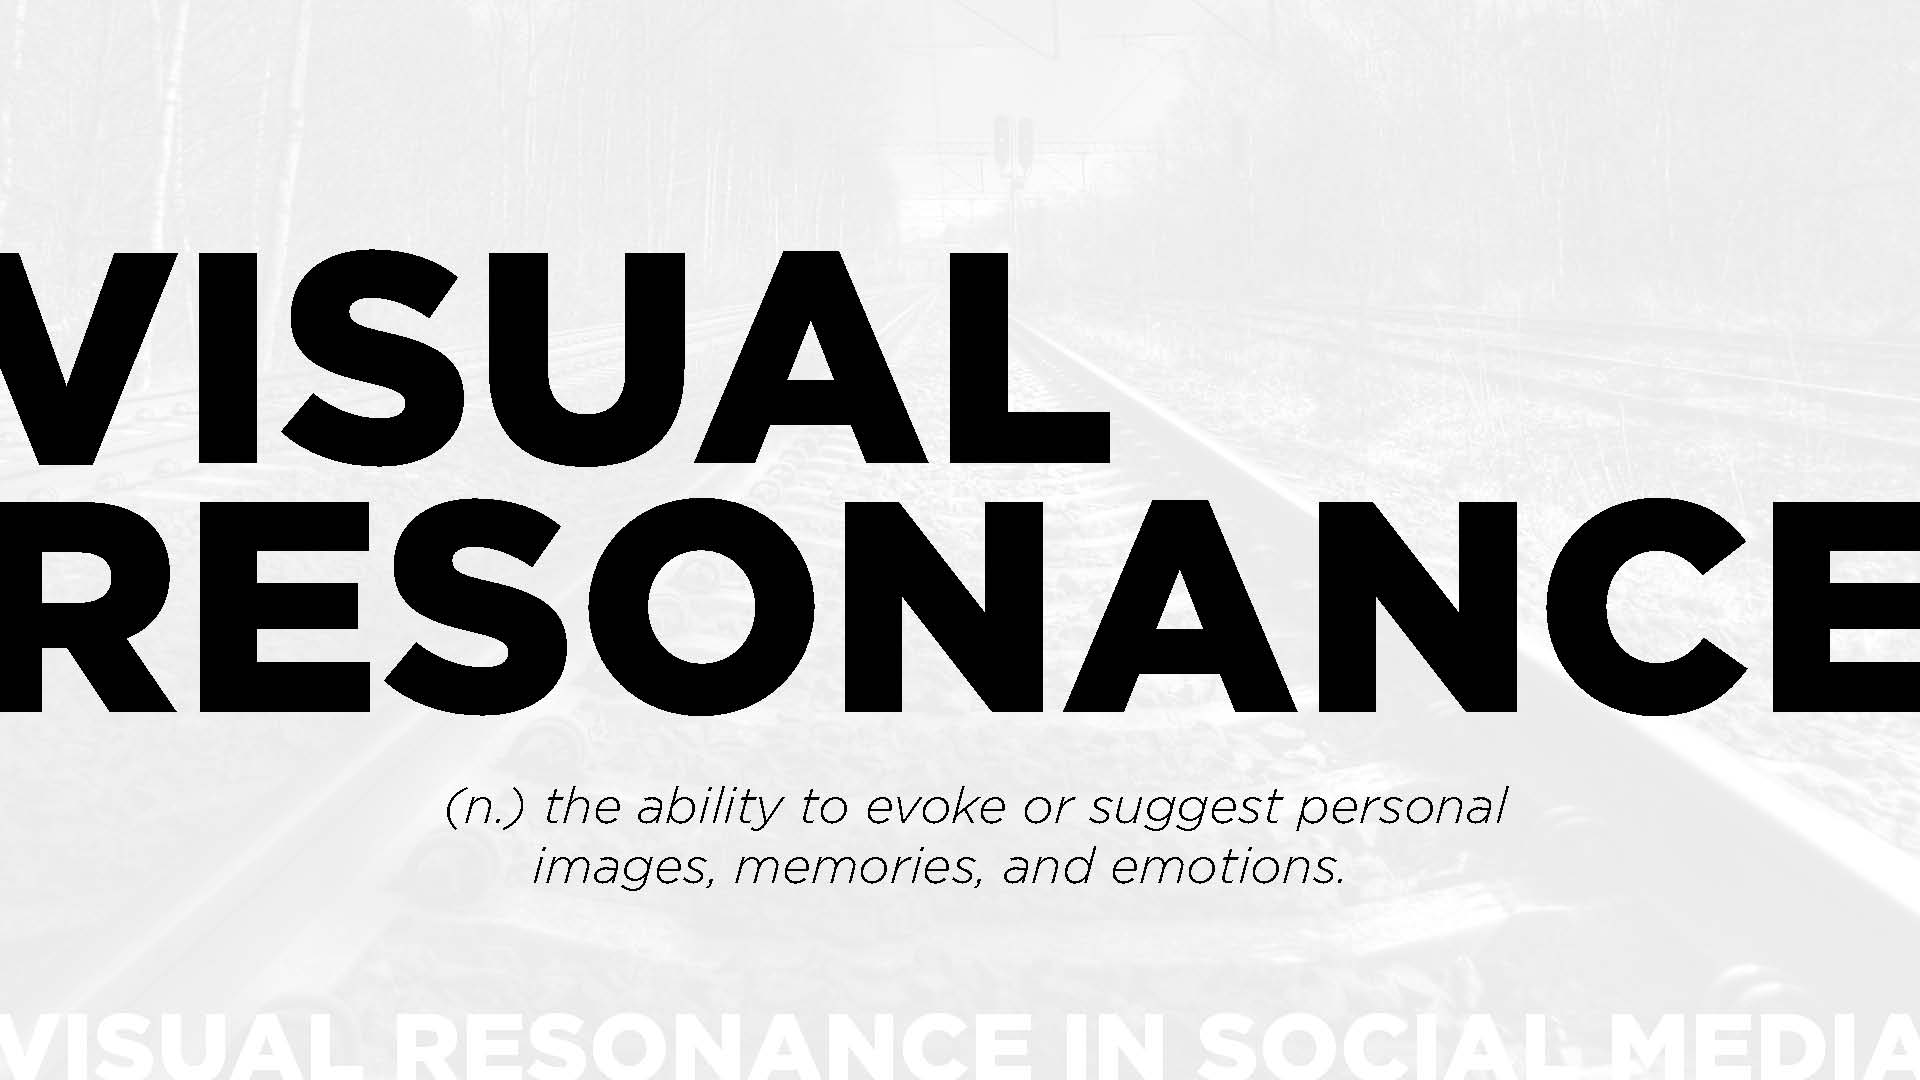 Visual Resonance: the ability to evoke or suggest personal images, memories, and emotions.